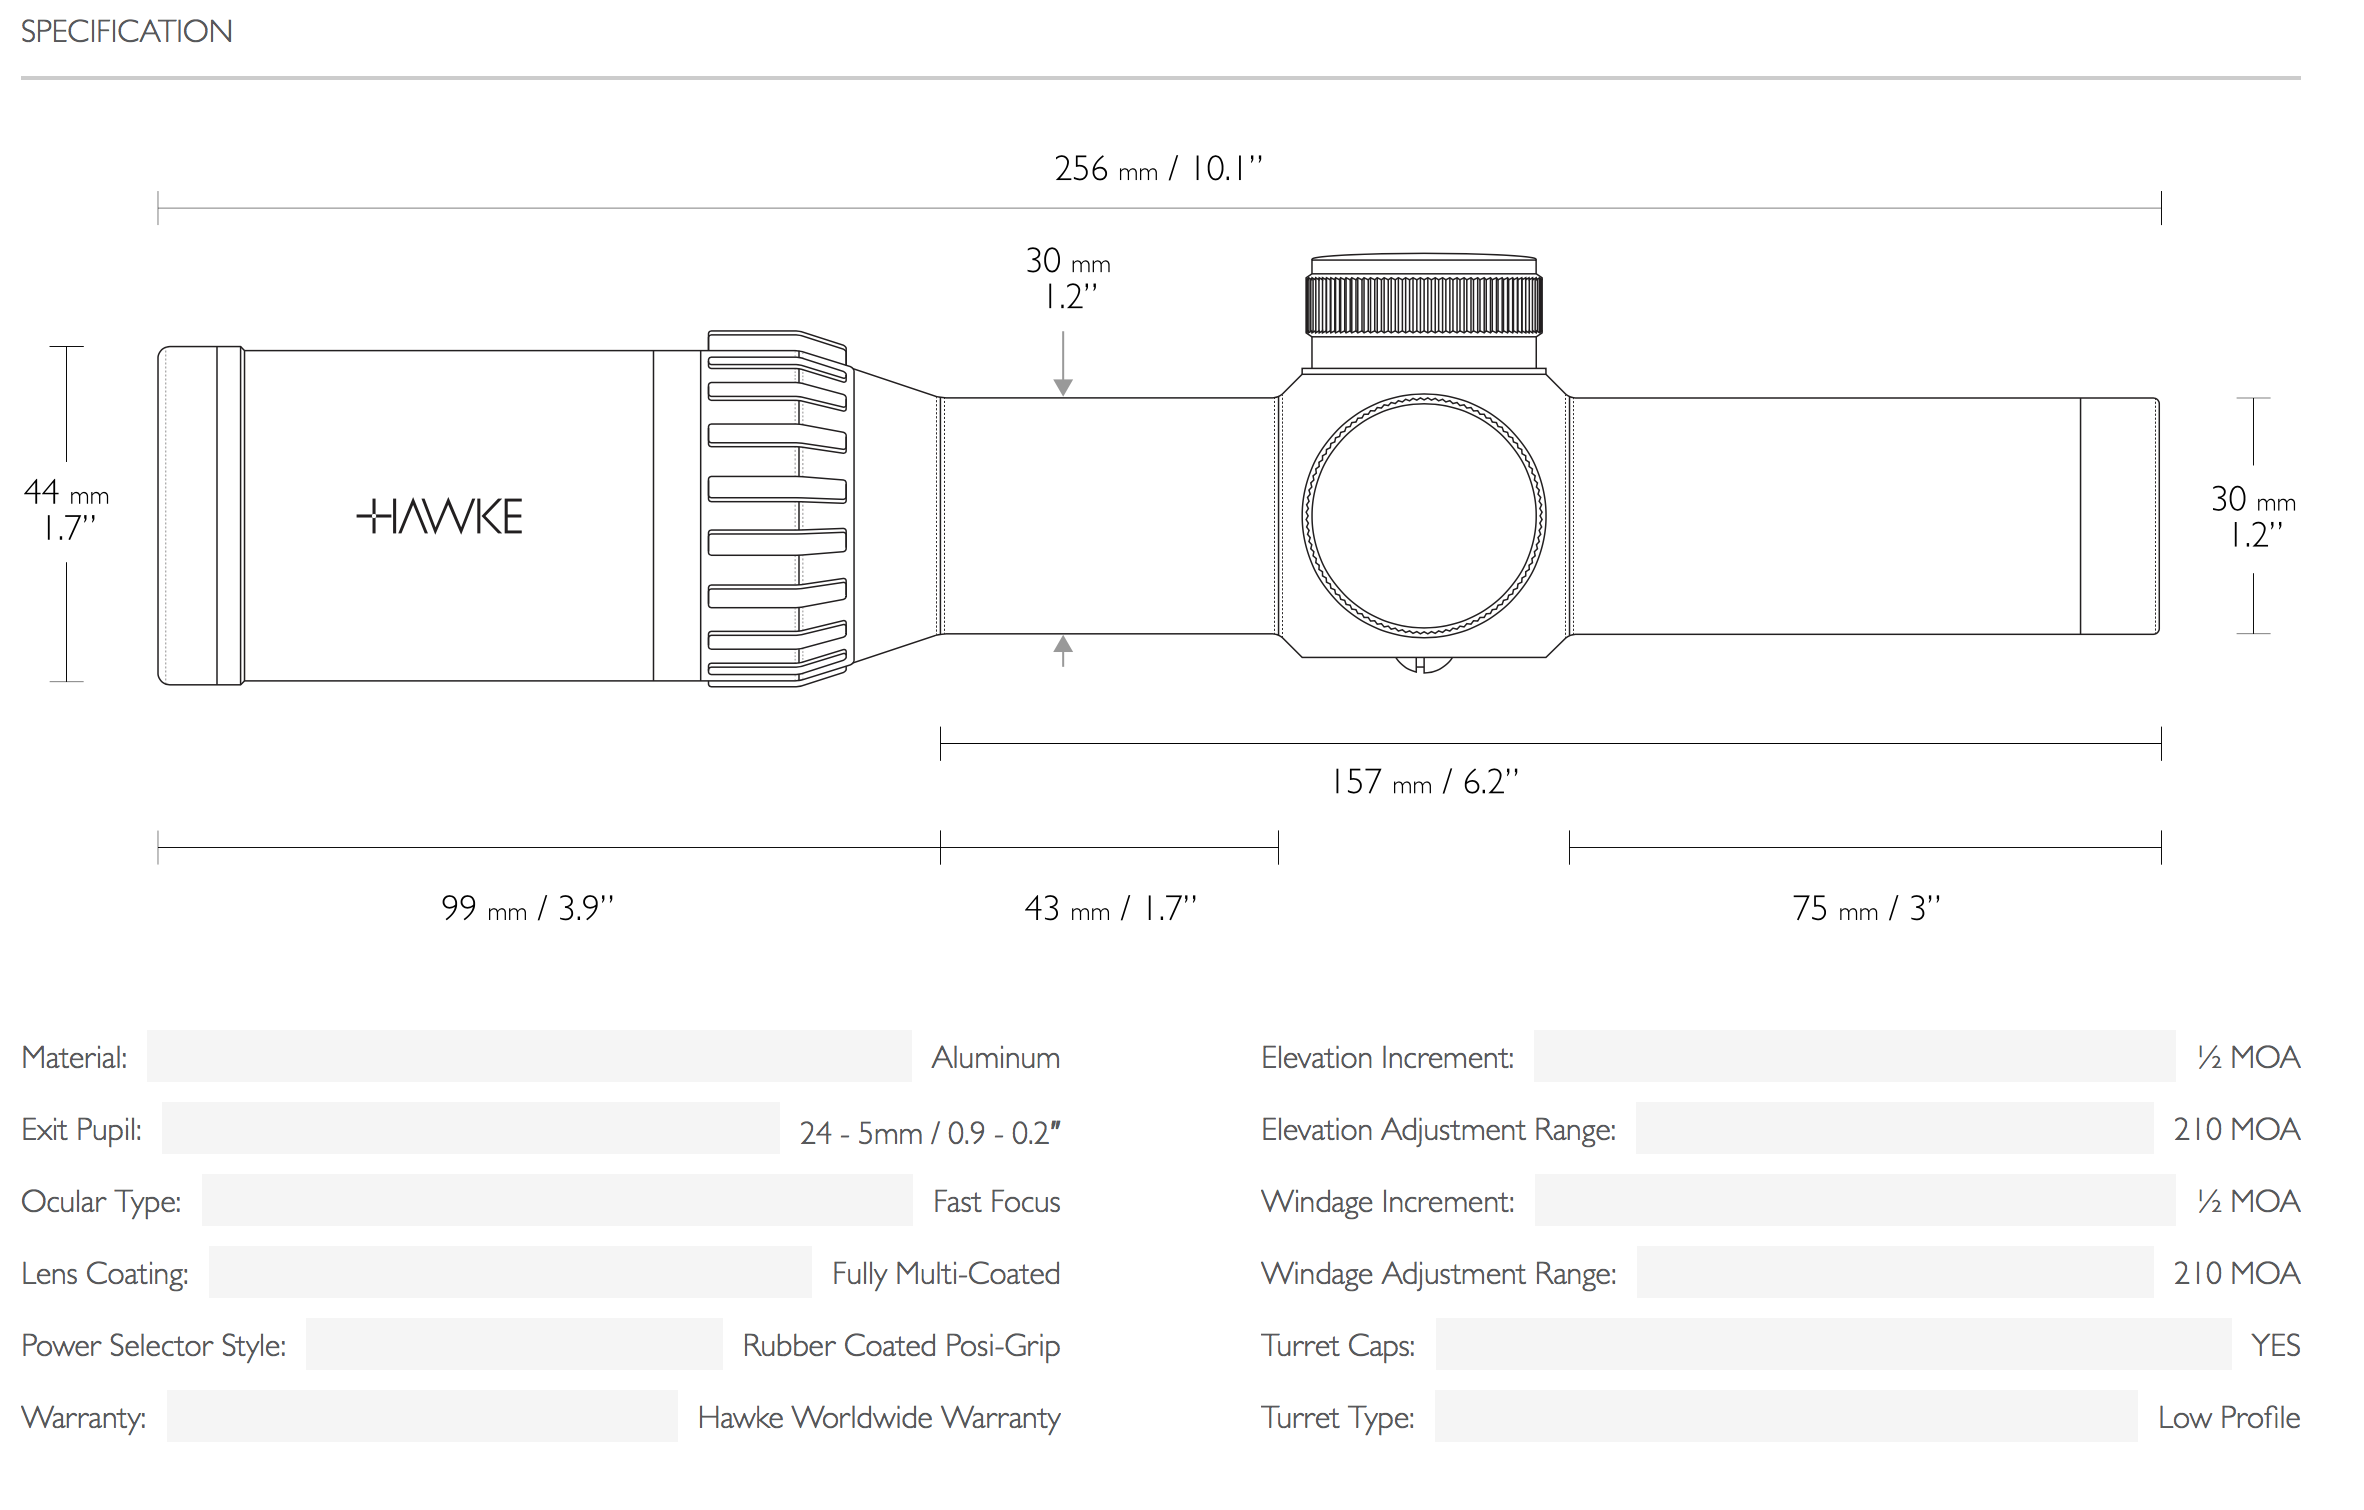 Hawke XB30 Specifications